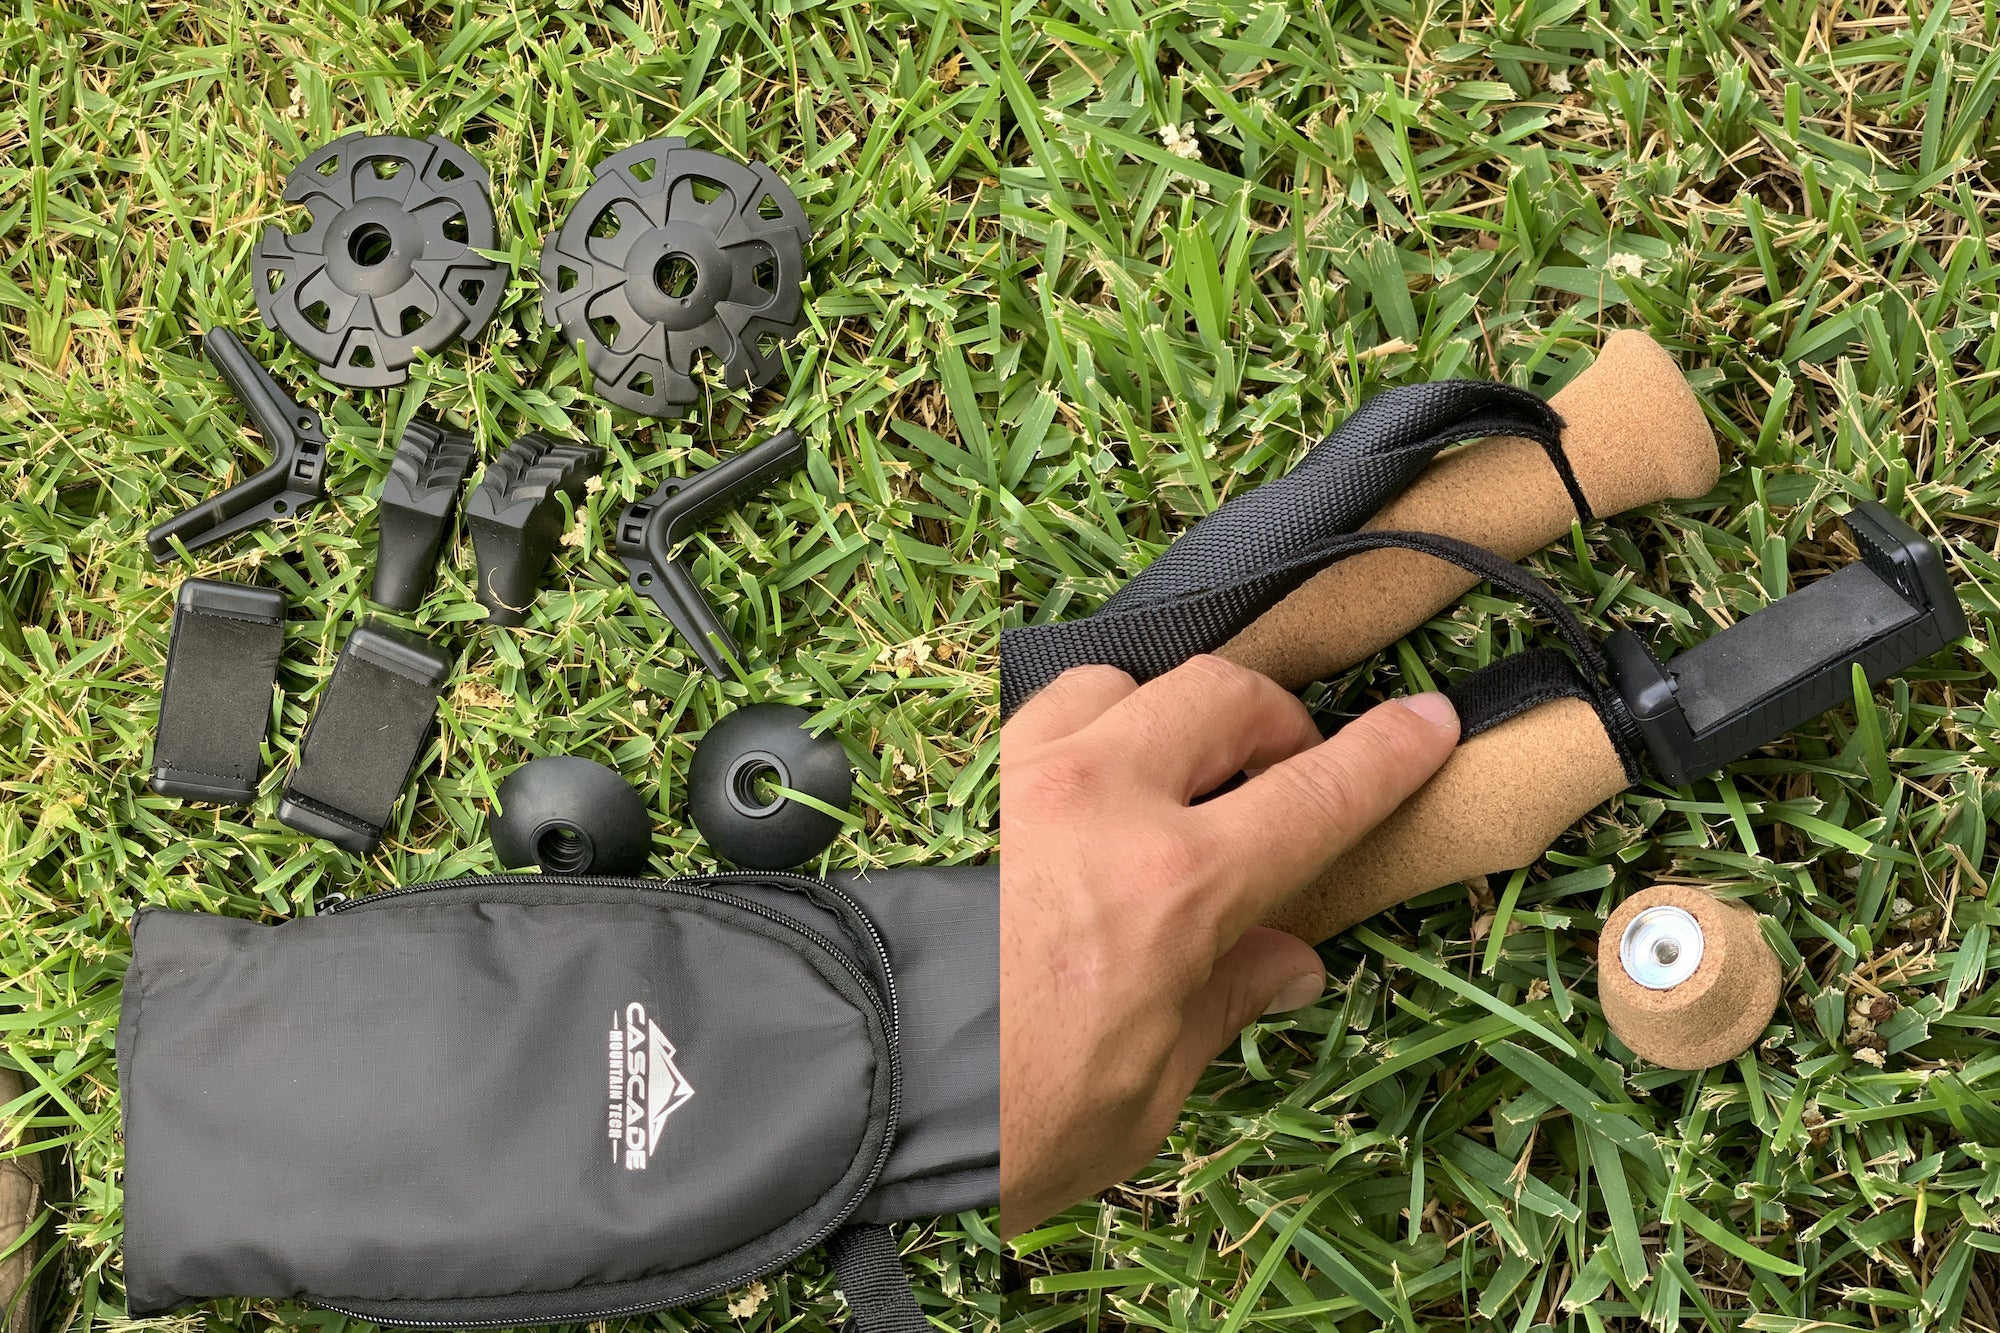 Monopod tips and baskets